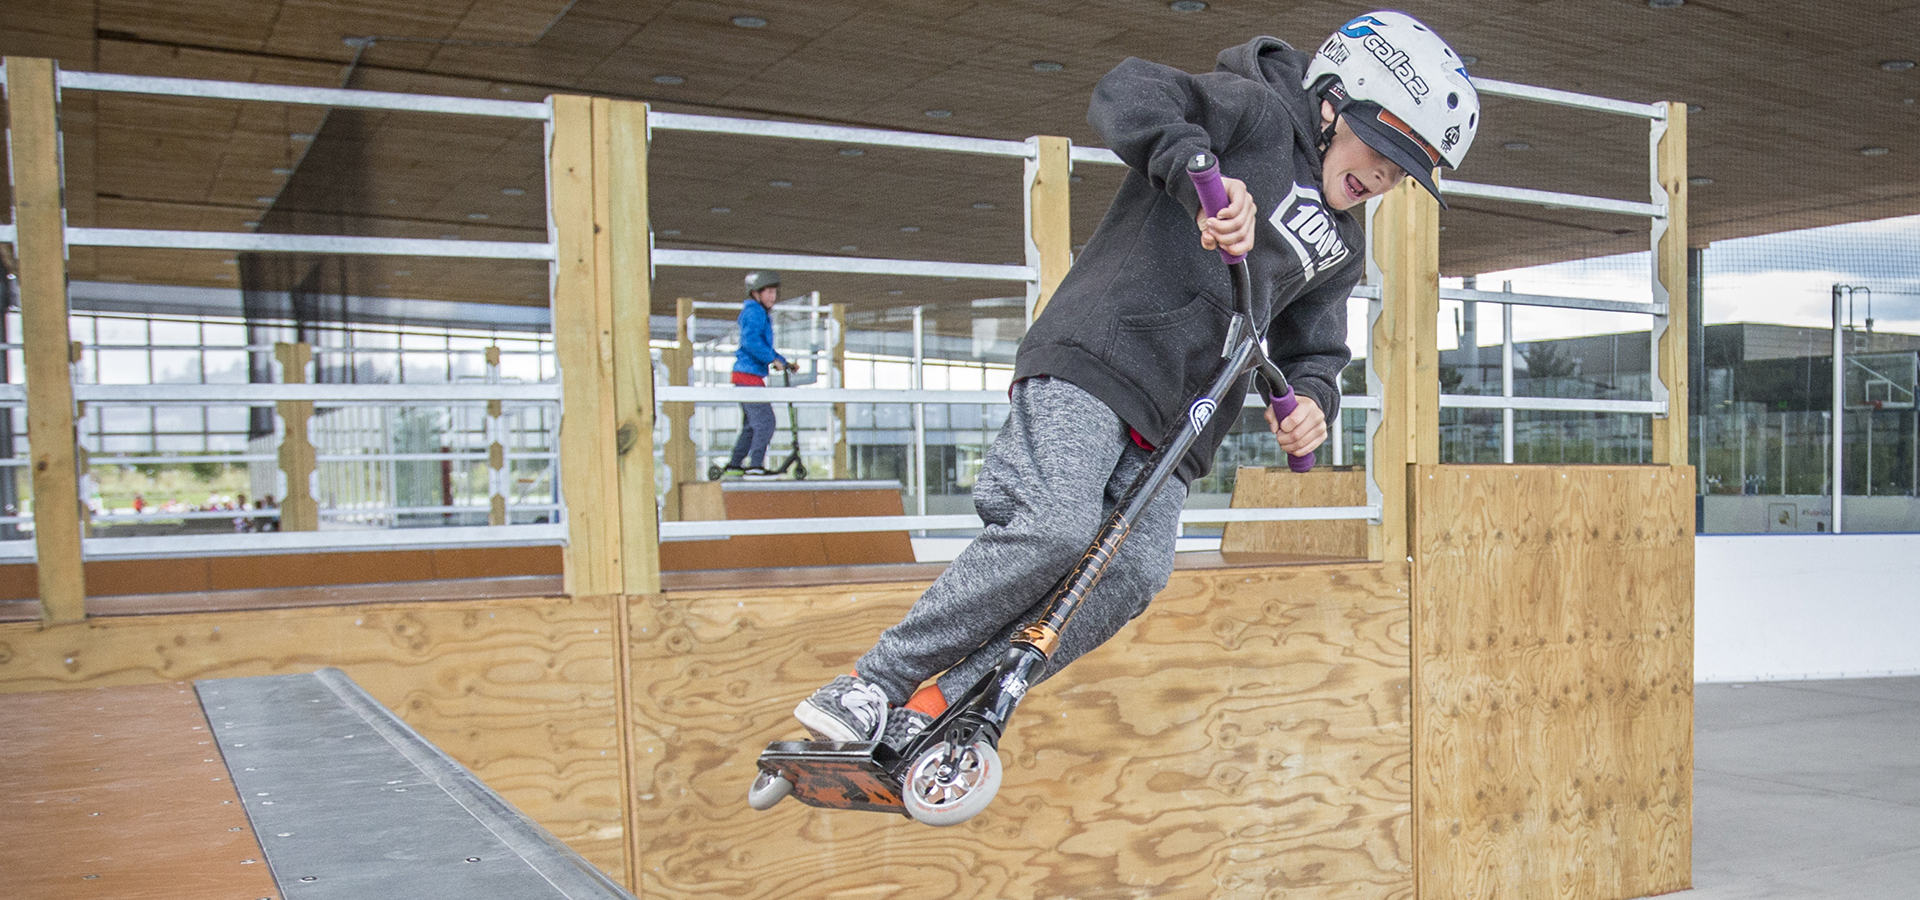 Boy on scooter jumping off skatepark